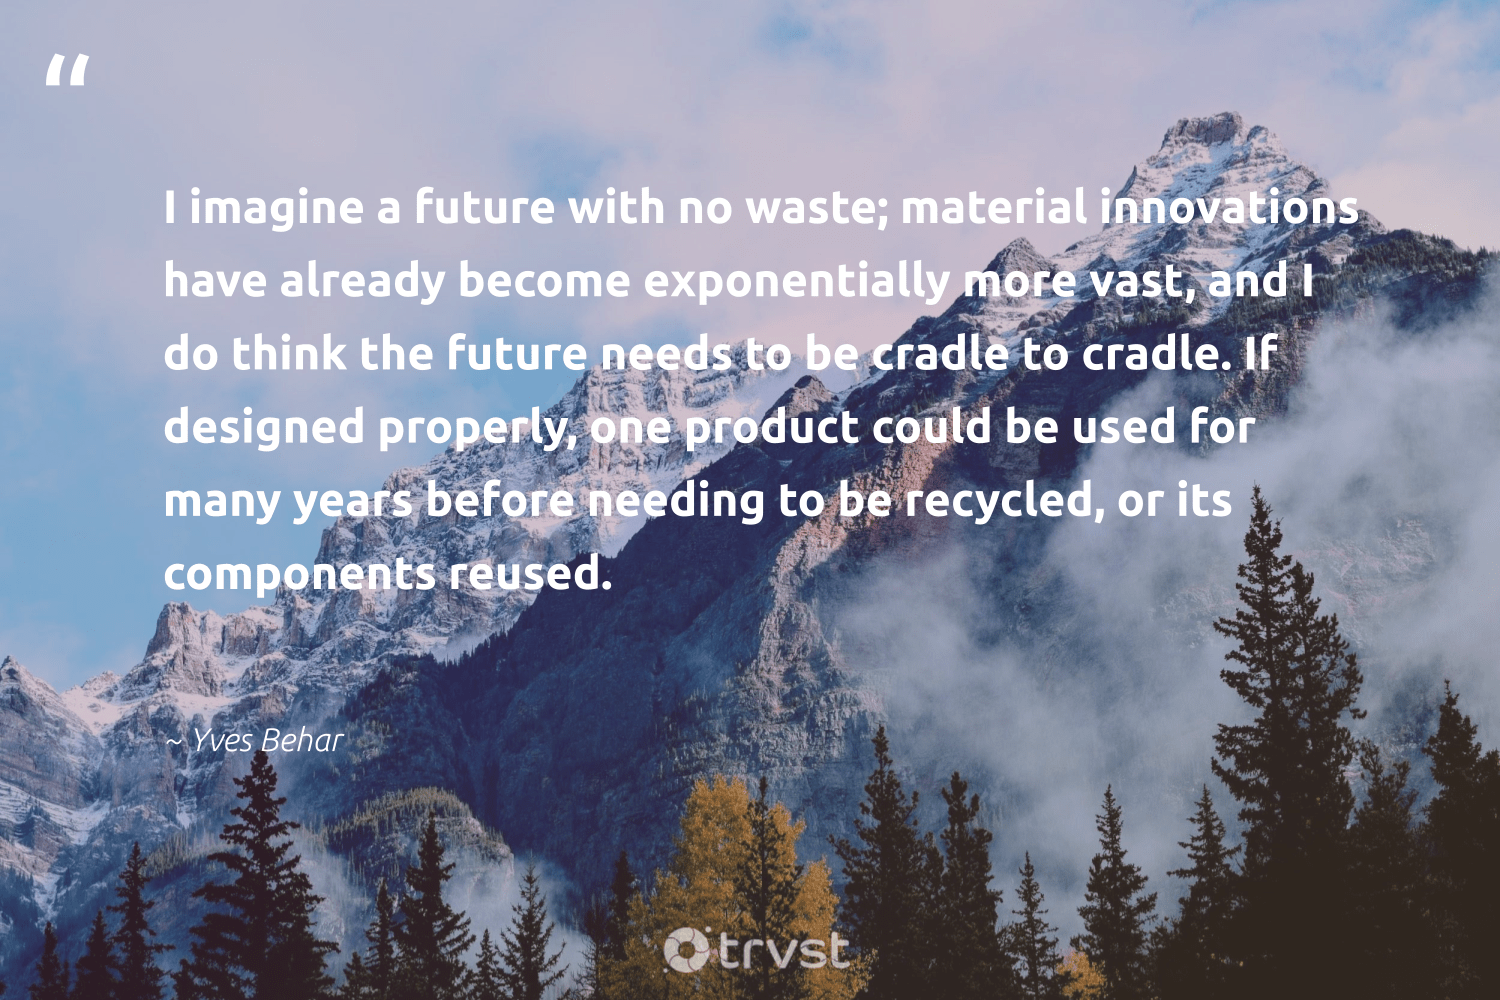 """""""I imagine a future with no waste; material innovations have already become exponentially more vast, and I do think the future needs to be cradle to cradle. If designed properly, one product could be used for many years before needing to be recycled, or its components reused.""""  - Yves Behar #trvst #quotes #recycling #reused #recycled #environmentallyfriendly #environment #socialimpact #repair #dogood #greenliving #changetheworld"""